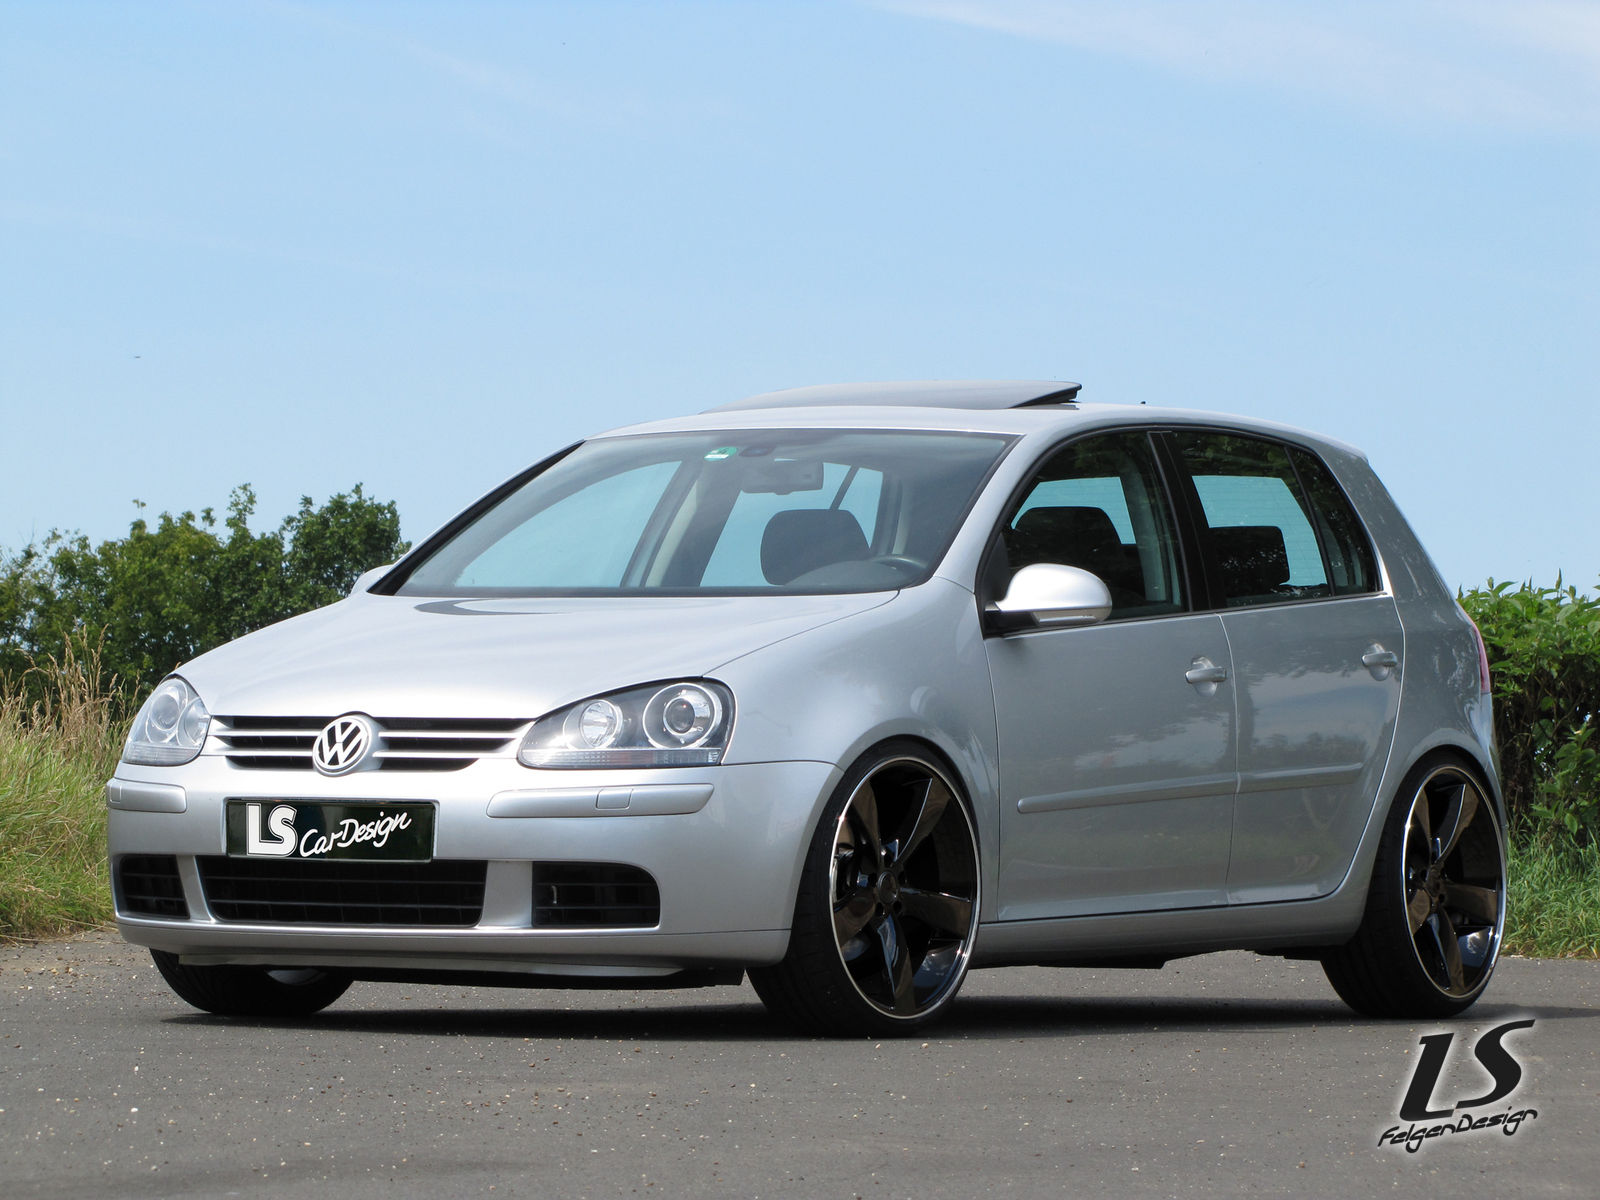 vw golf edition 30 edition 35 gti gtd r32. Black Bedroom Furniture Sets. Home Design Ideas